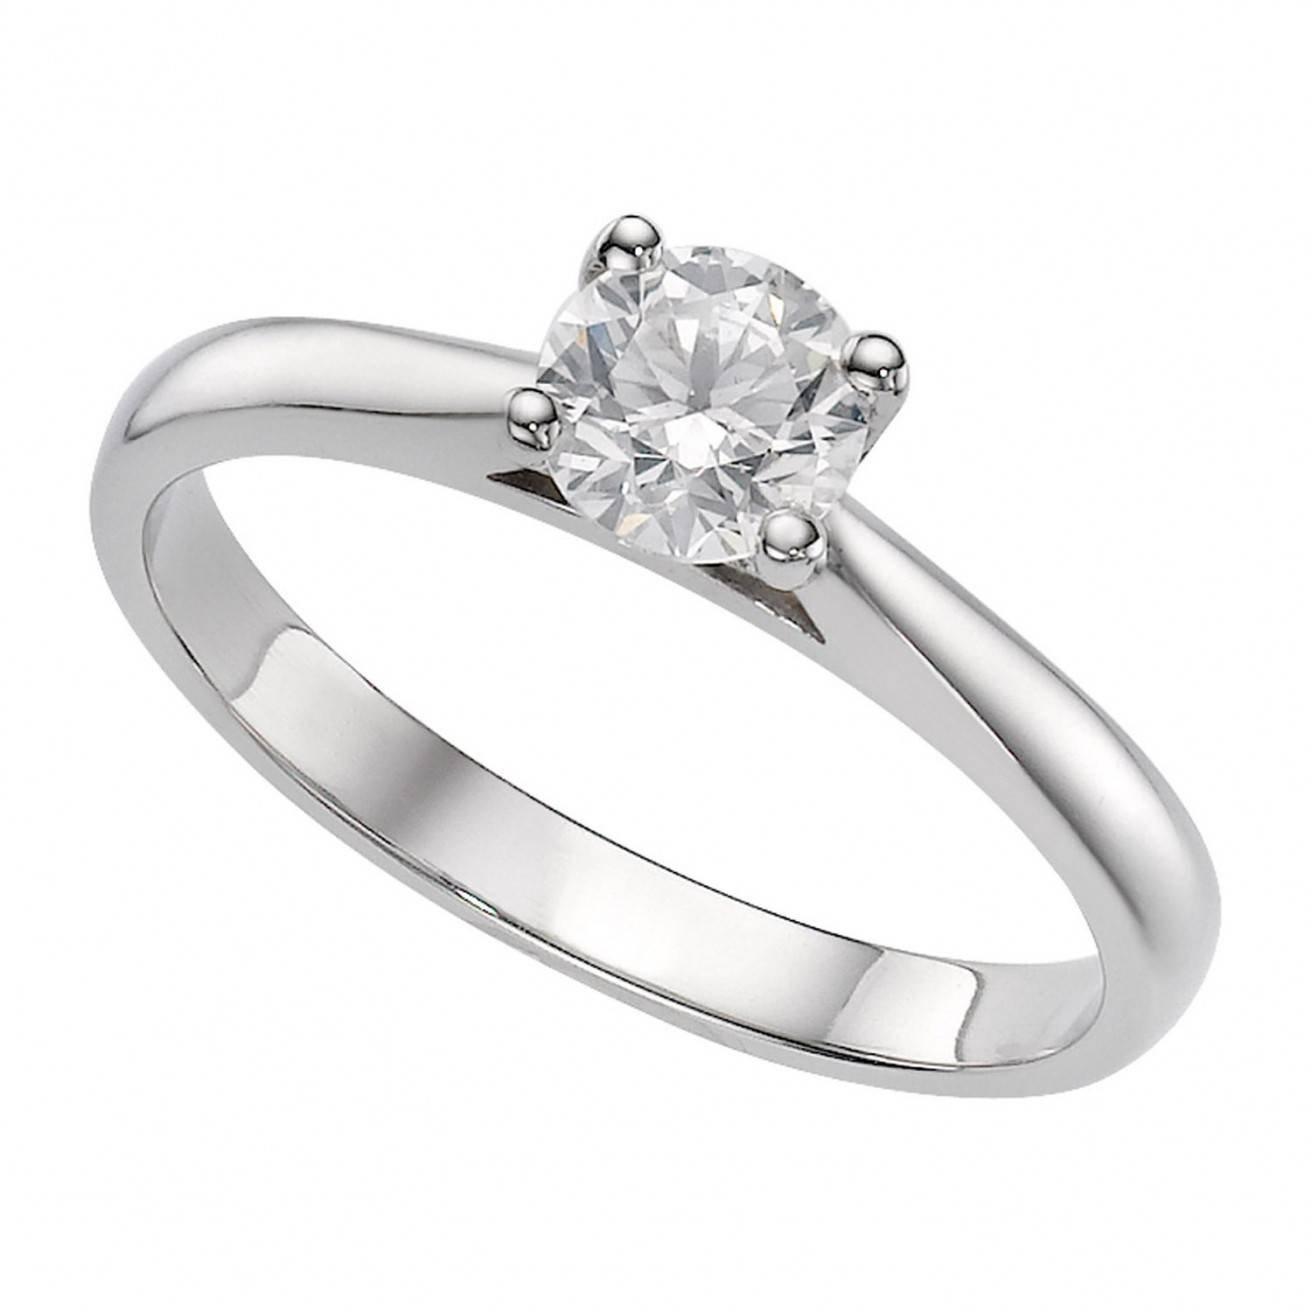 Buy A Platinum Engagement Ring – Fraser Hart With Regard To Diamond Platinum Wedding Rings (View 11 of 15)